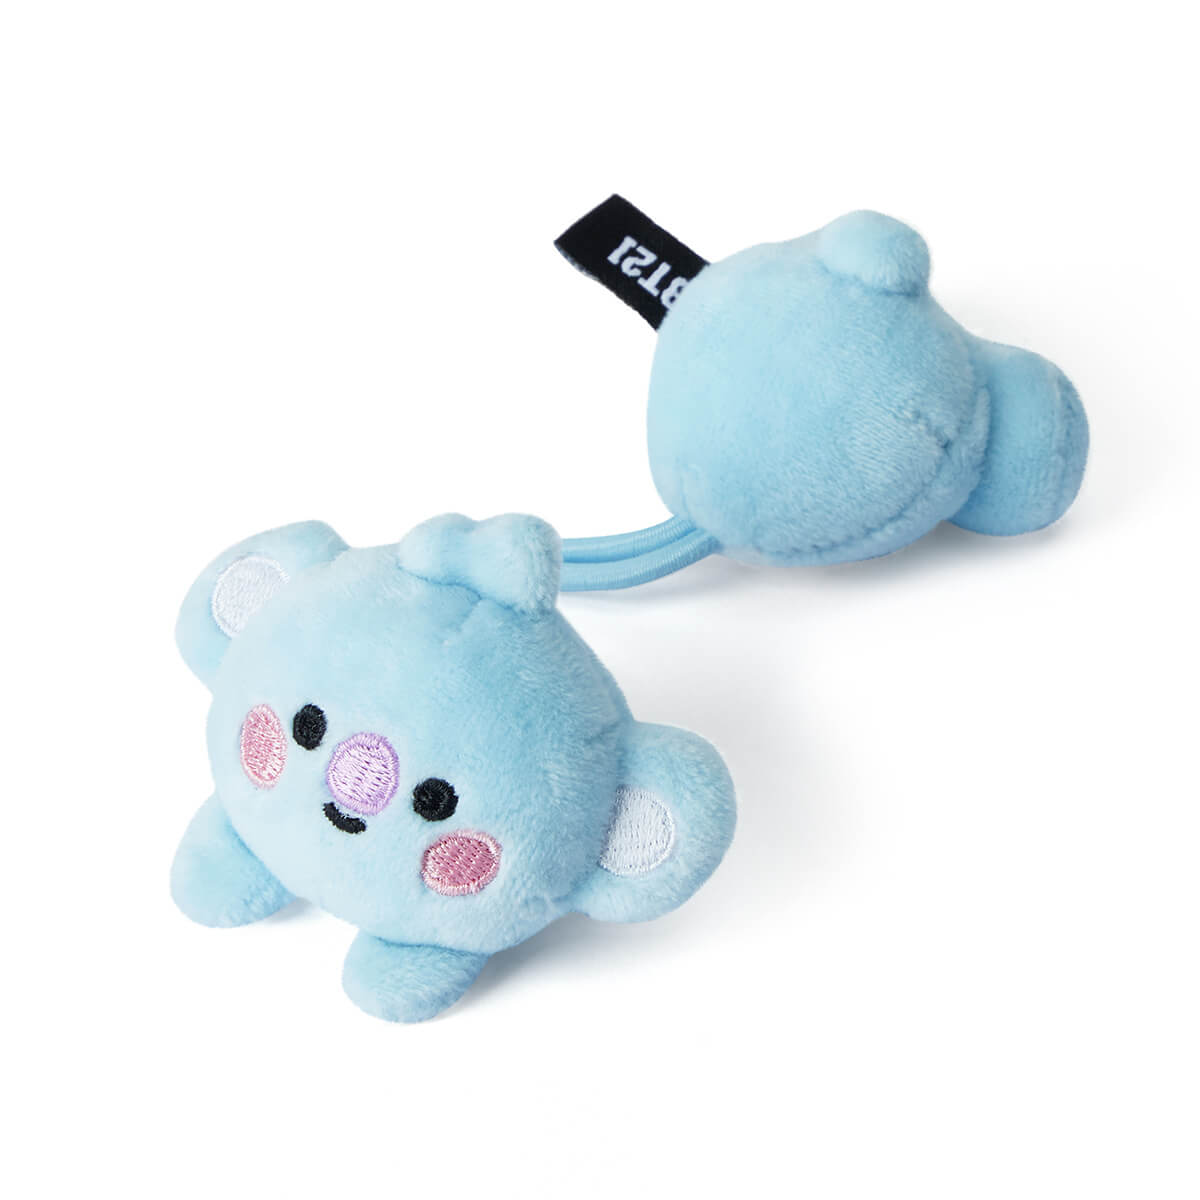 BT21 KOYA Baby Plush Hair Tie